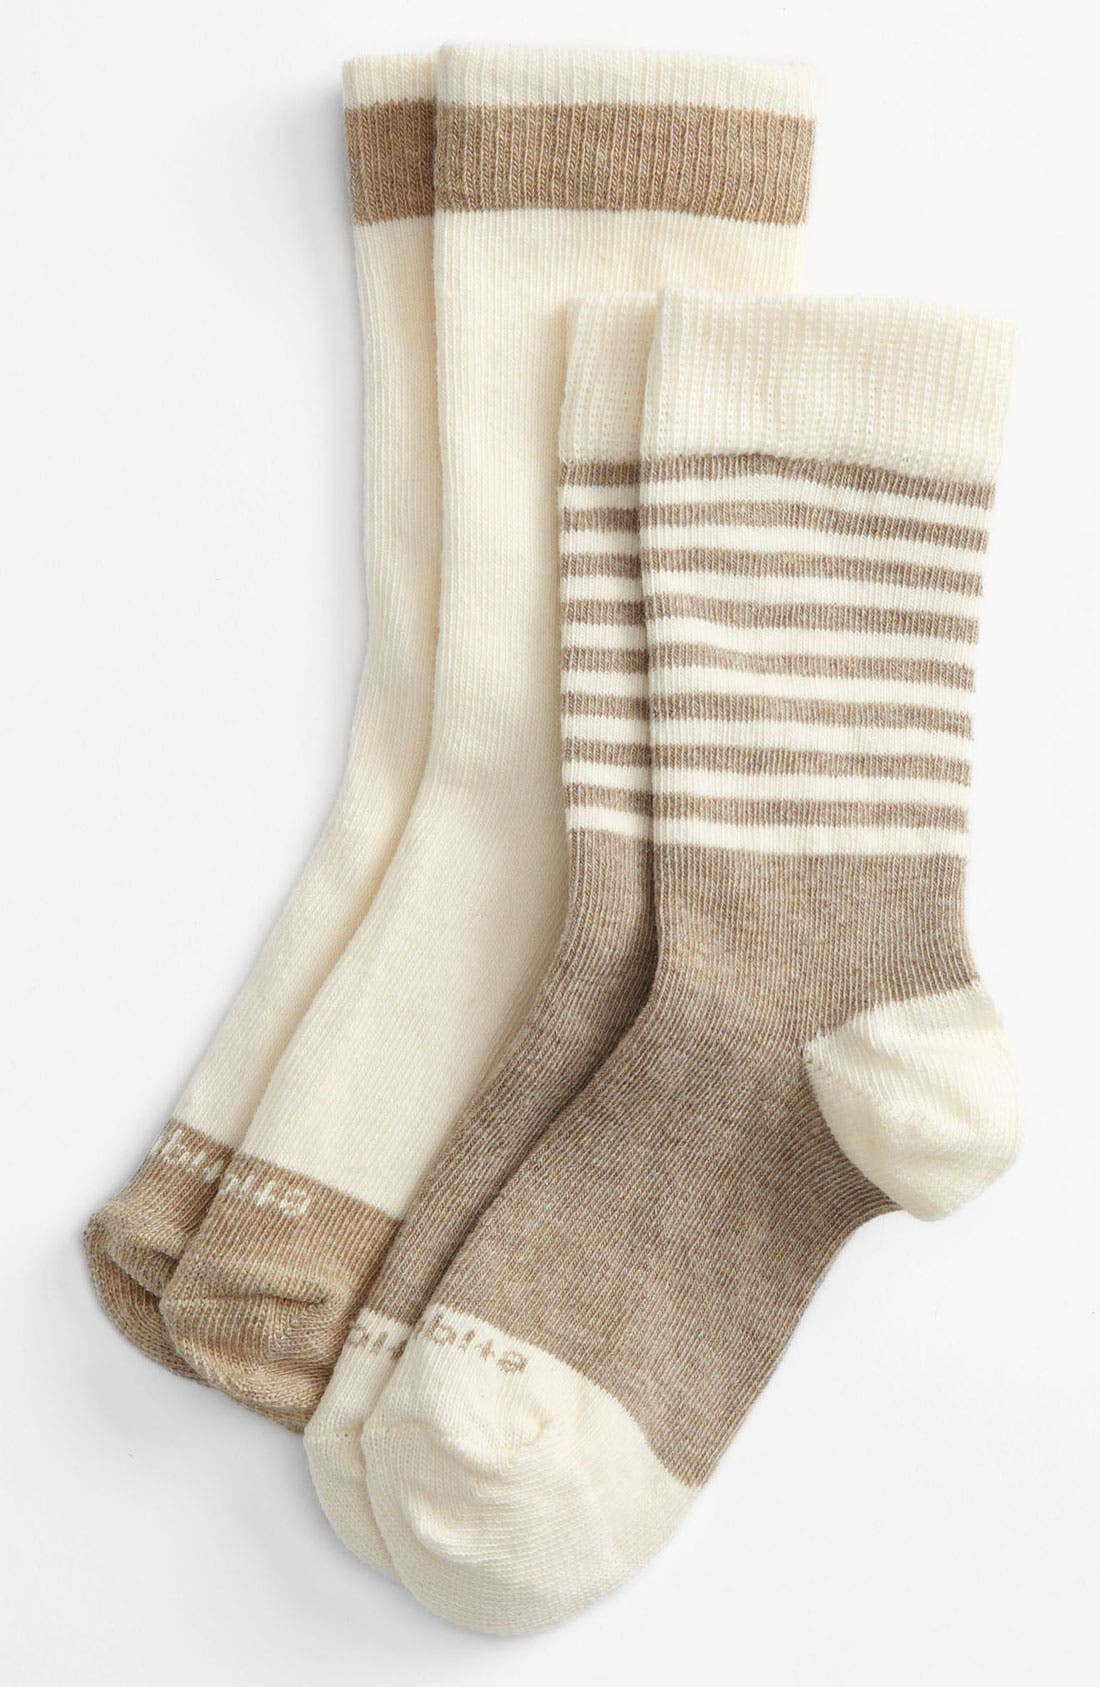 Main Image - Etiquette Clothiers 'Preppy Stripe' Socks (2-Pack) (Toddler, Little Kid & Big Kid)